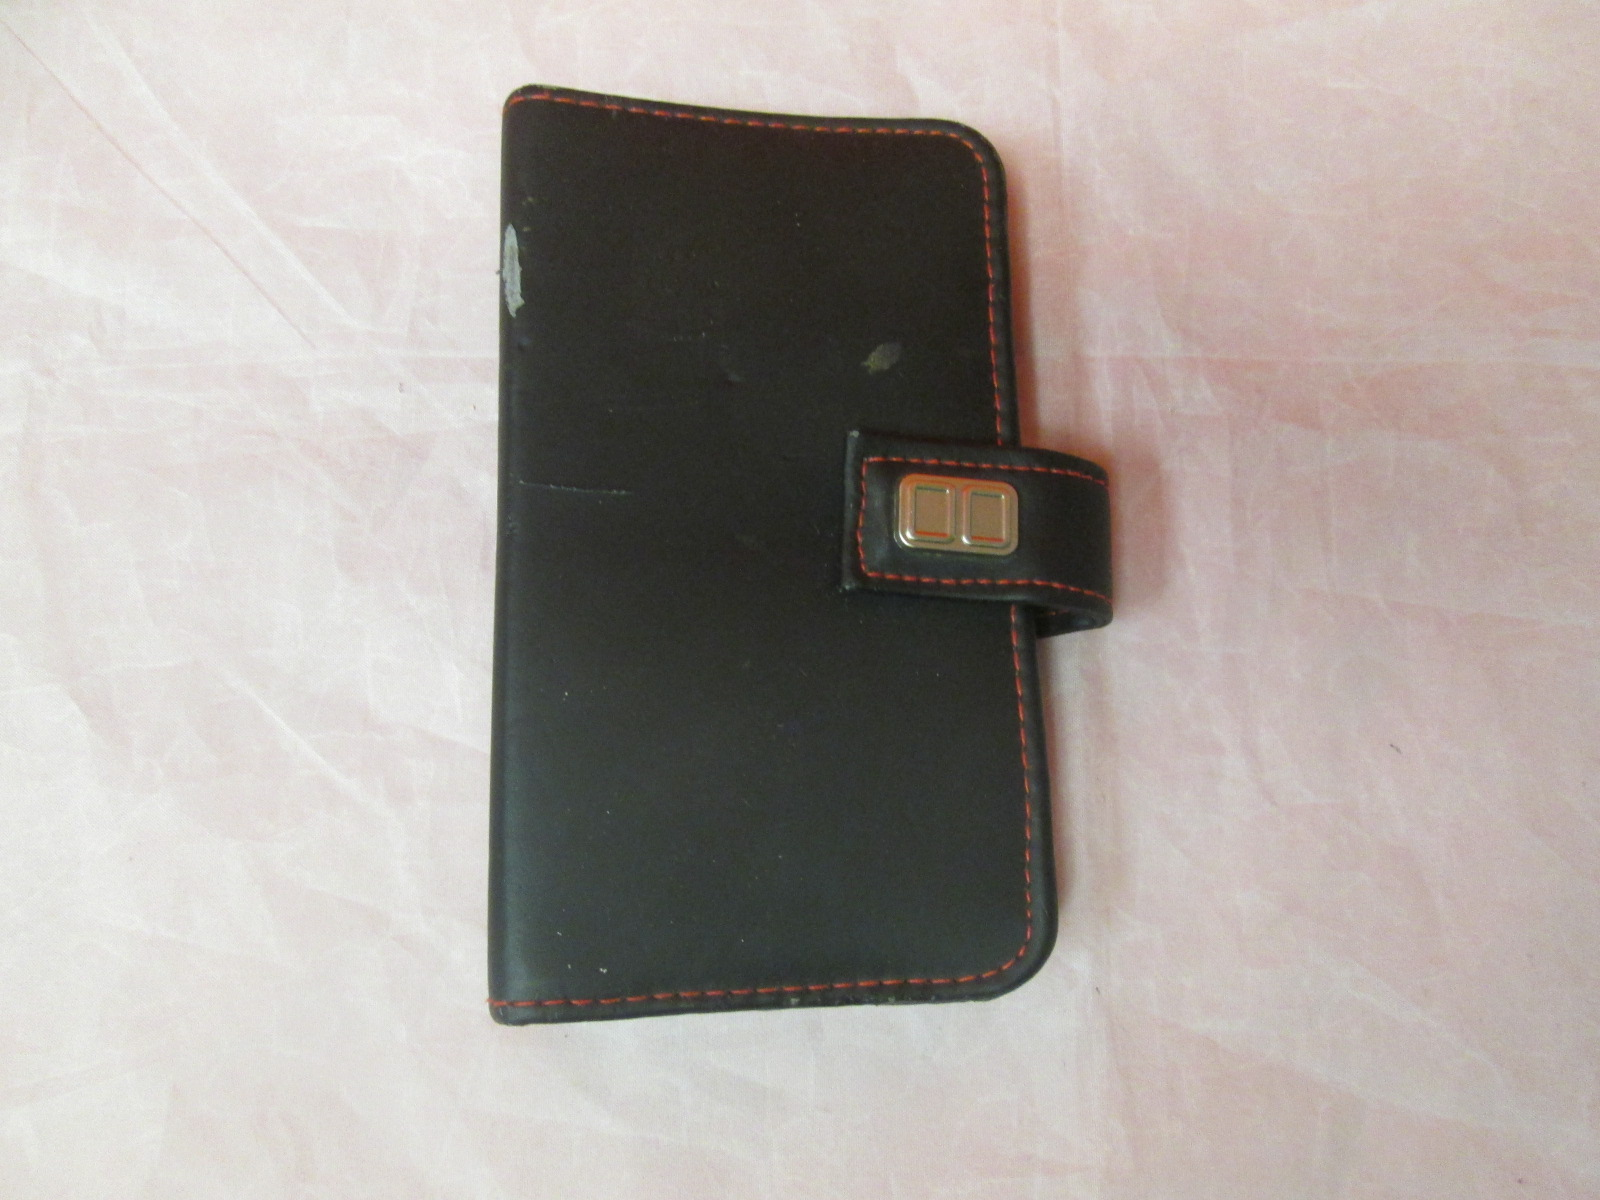 Black Leather Case For Nintendo DS Handheld Console